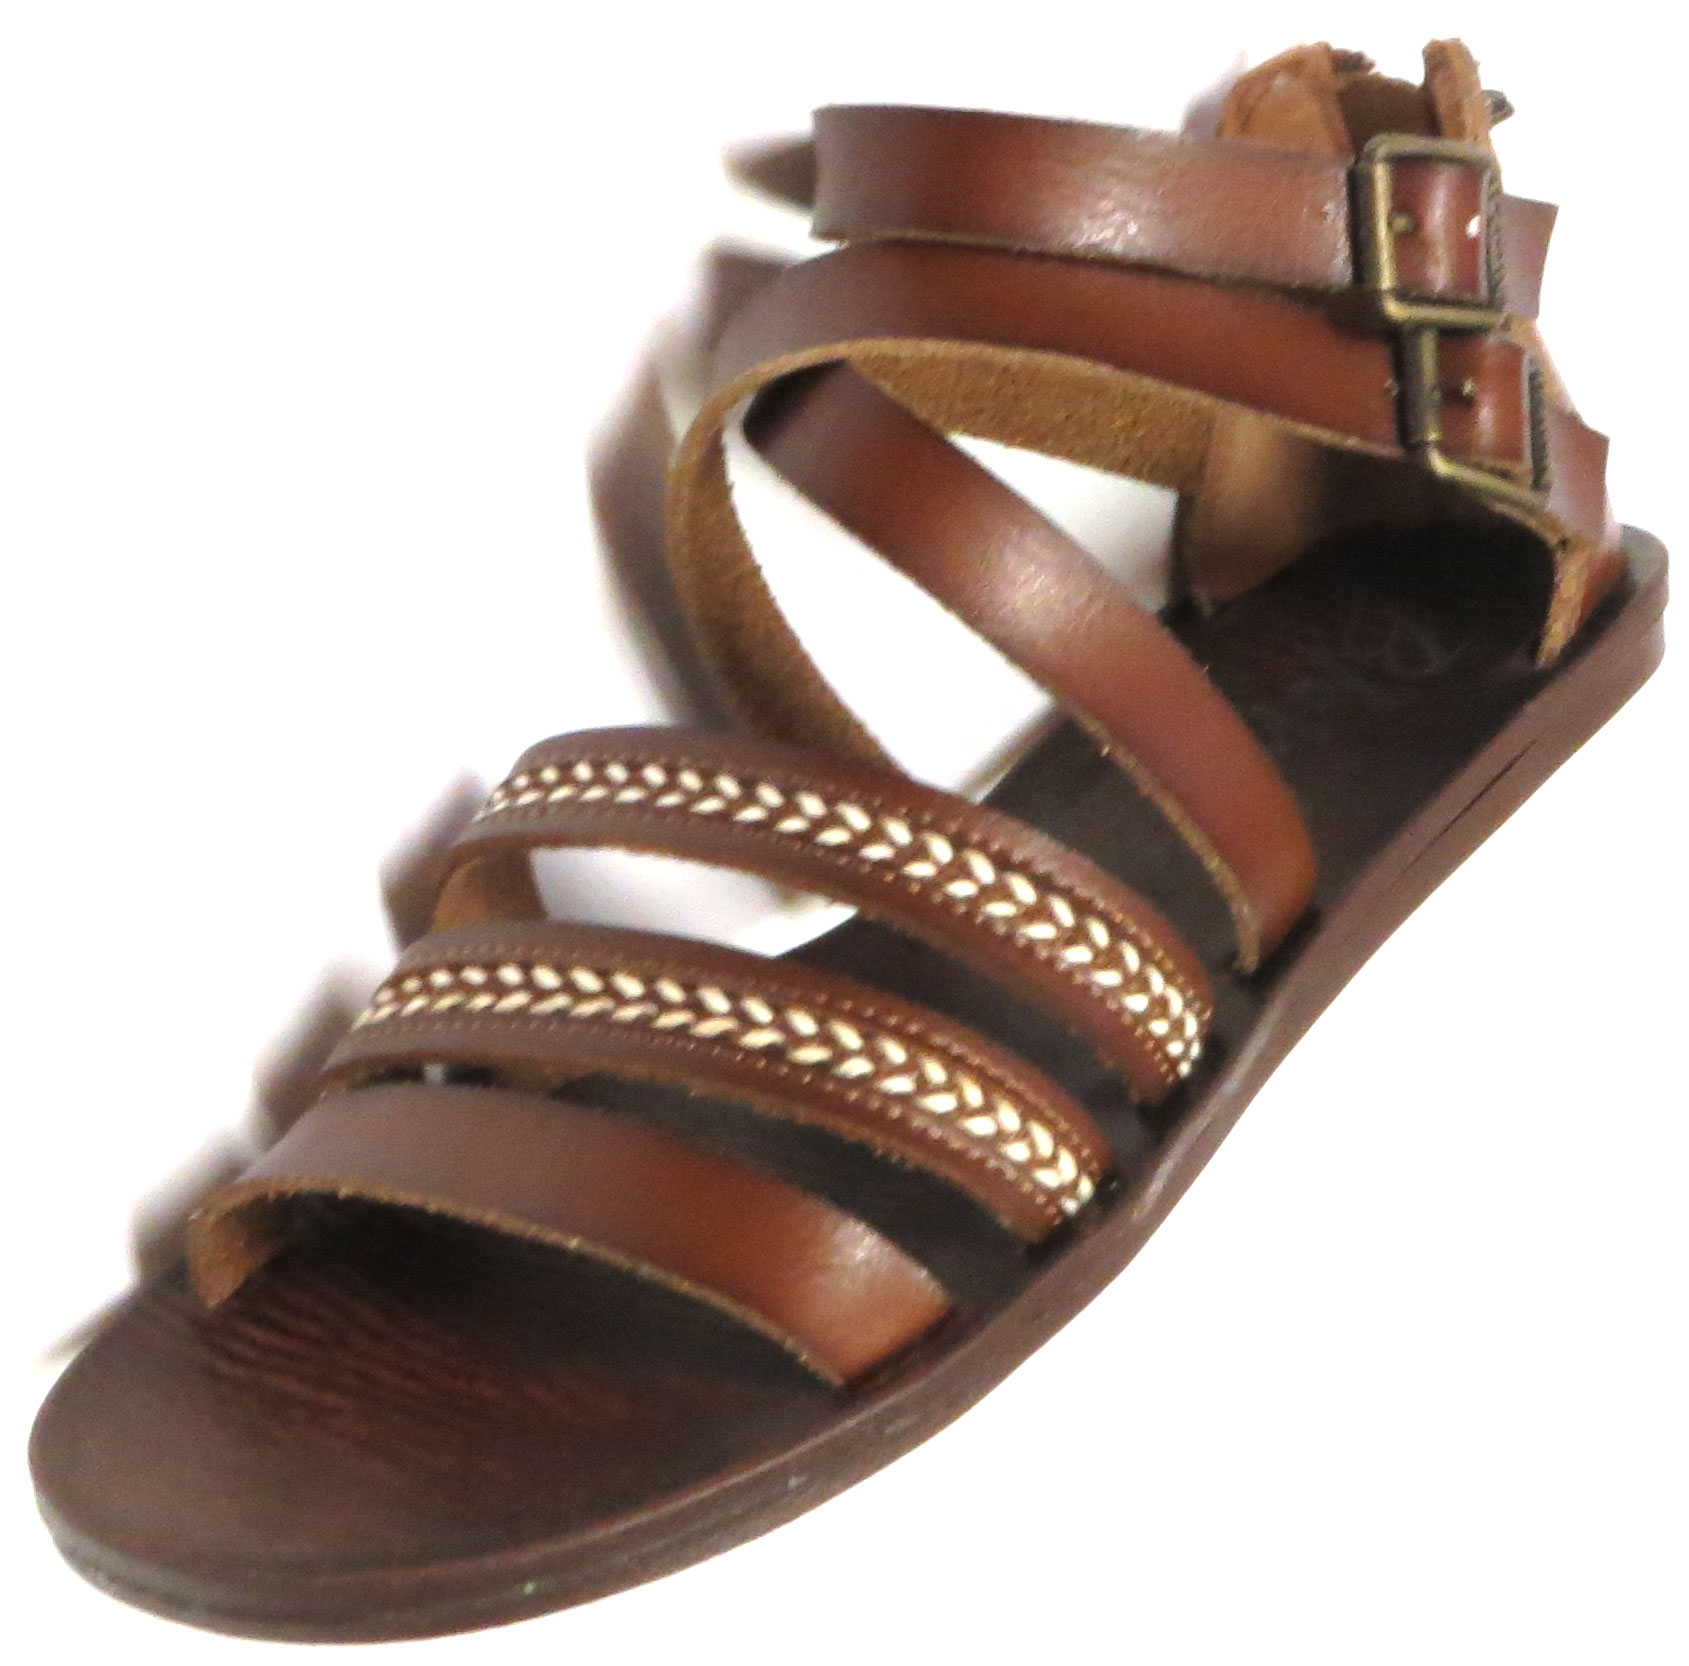 Top Stitched Sandal